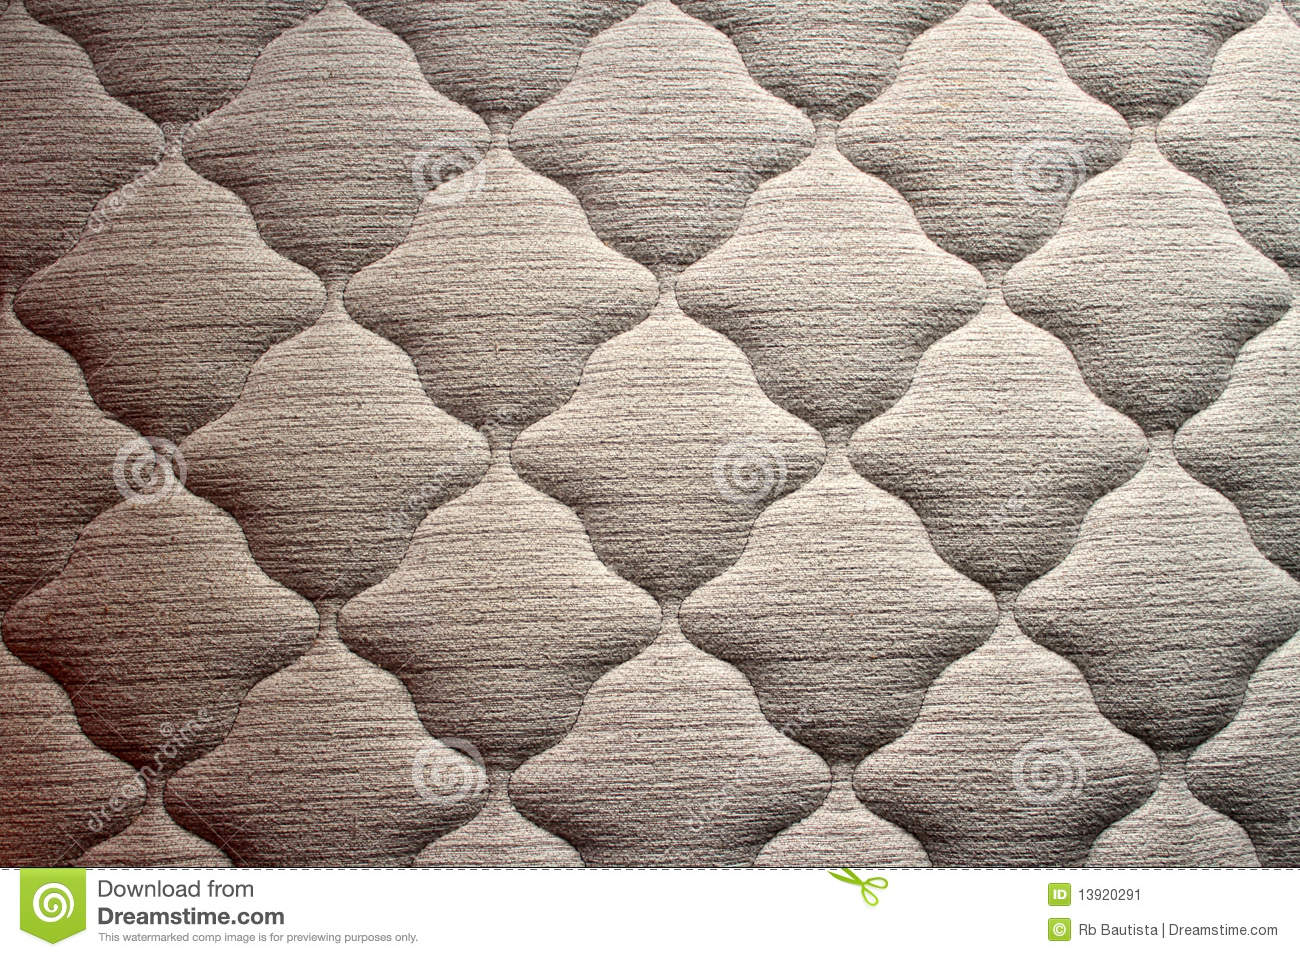 Brown bed sheets texture - Mattress Sheet Texture